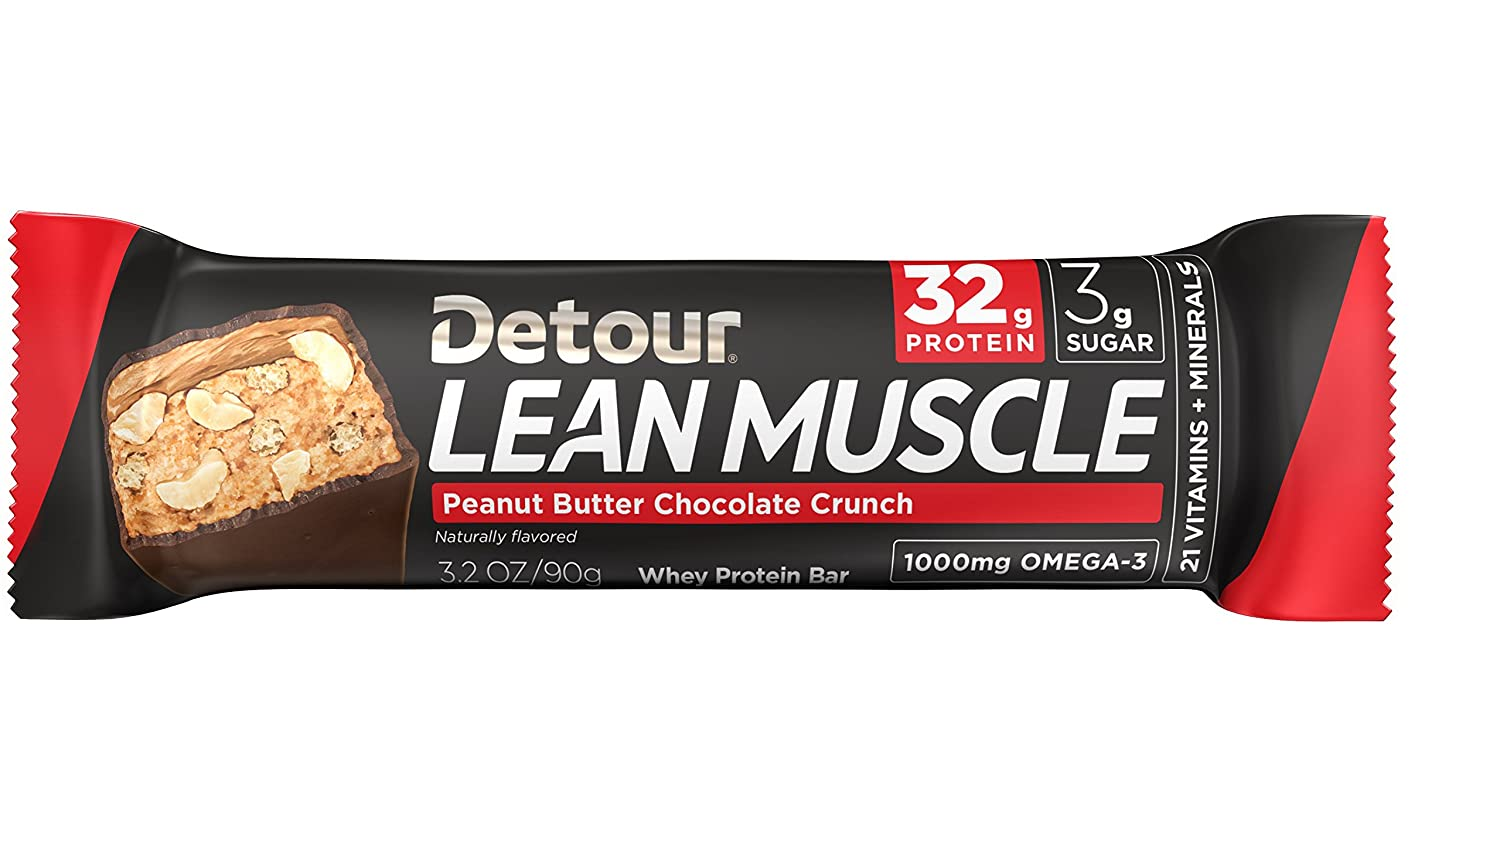 Detour Lean Muscle Peanut Butter Chocolate Crunch 32g protein, Pack of 12